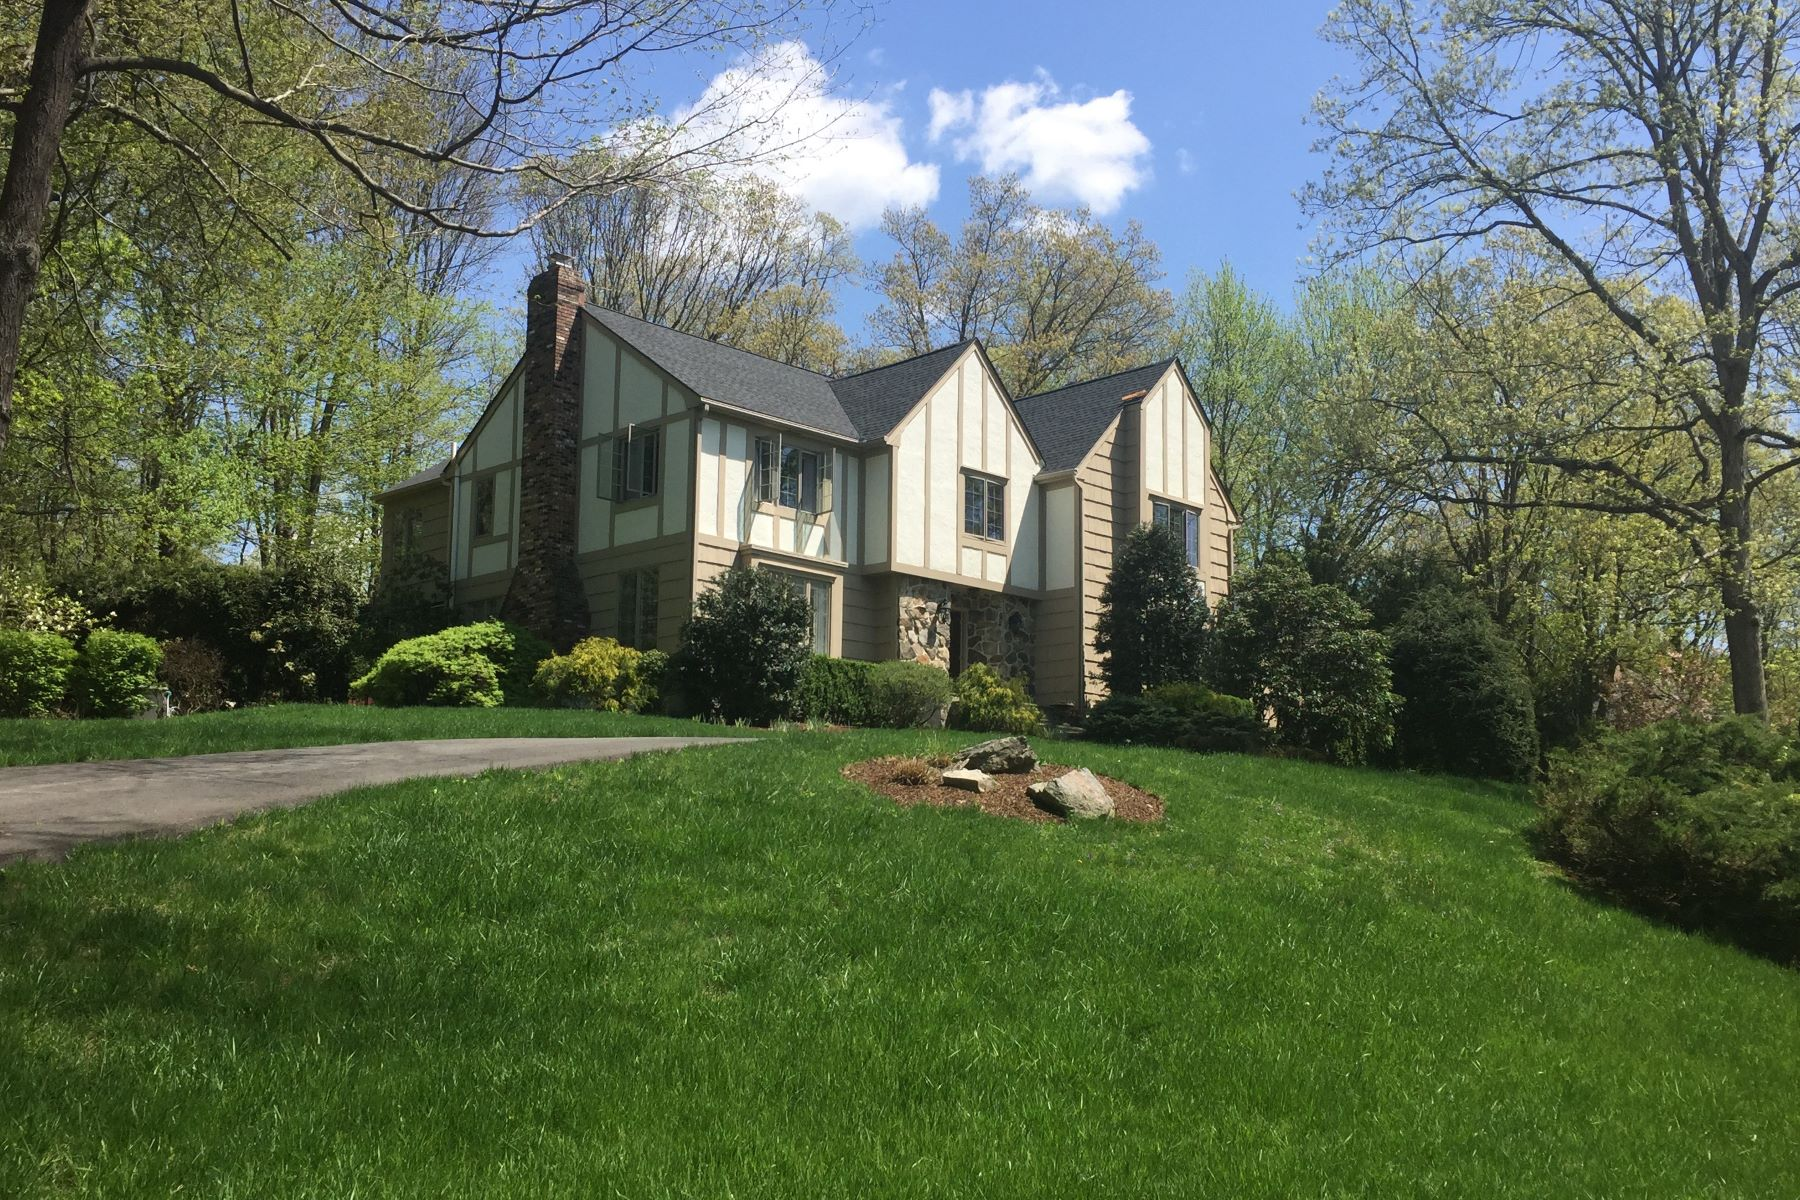 Single Family Homes for Sale at Classic Tudor 32 Hull Place Ridgefield, Connecticut 06877 United States